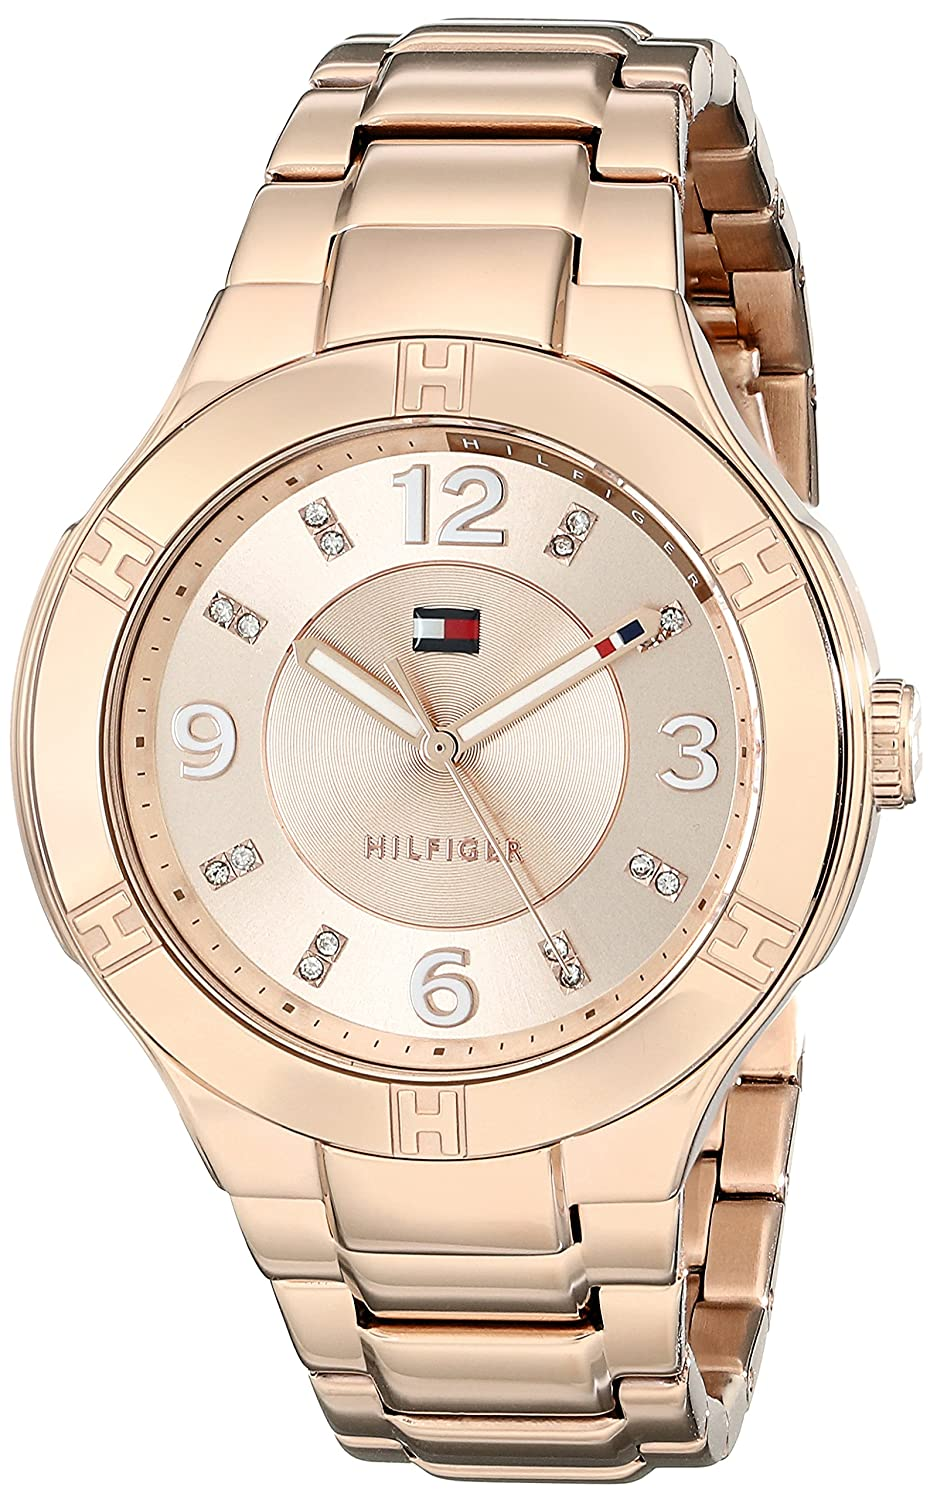 Amazon.com: Tommy Hilfiger Womens 1781445 Analog Display Quartz Rose Gold Watch: Tommy Hilfiger: Watches